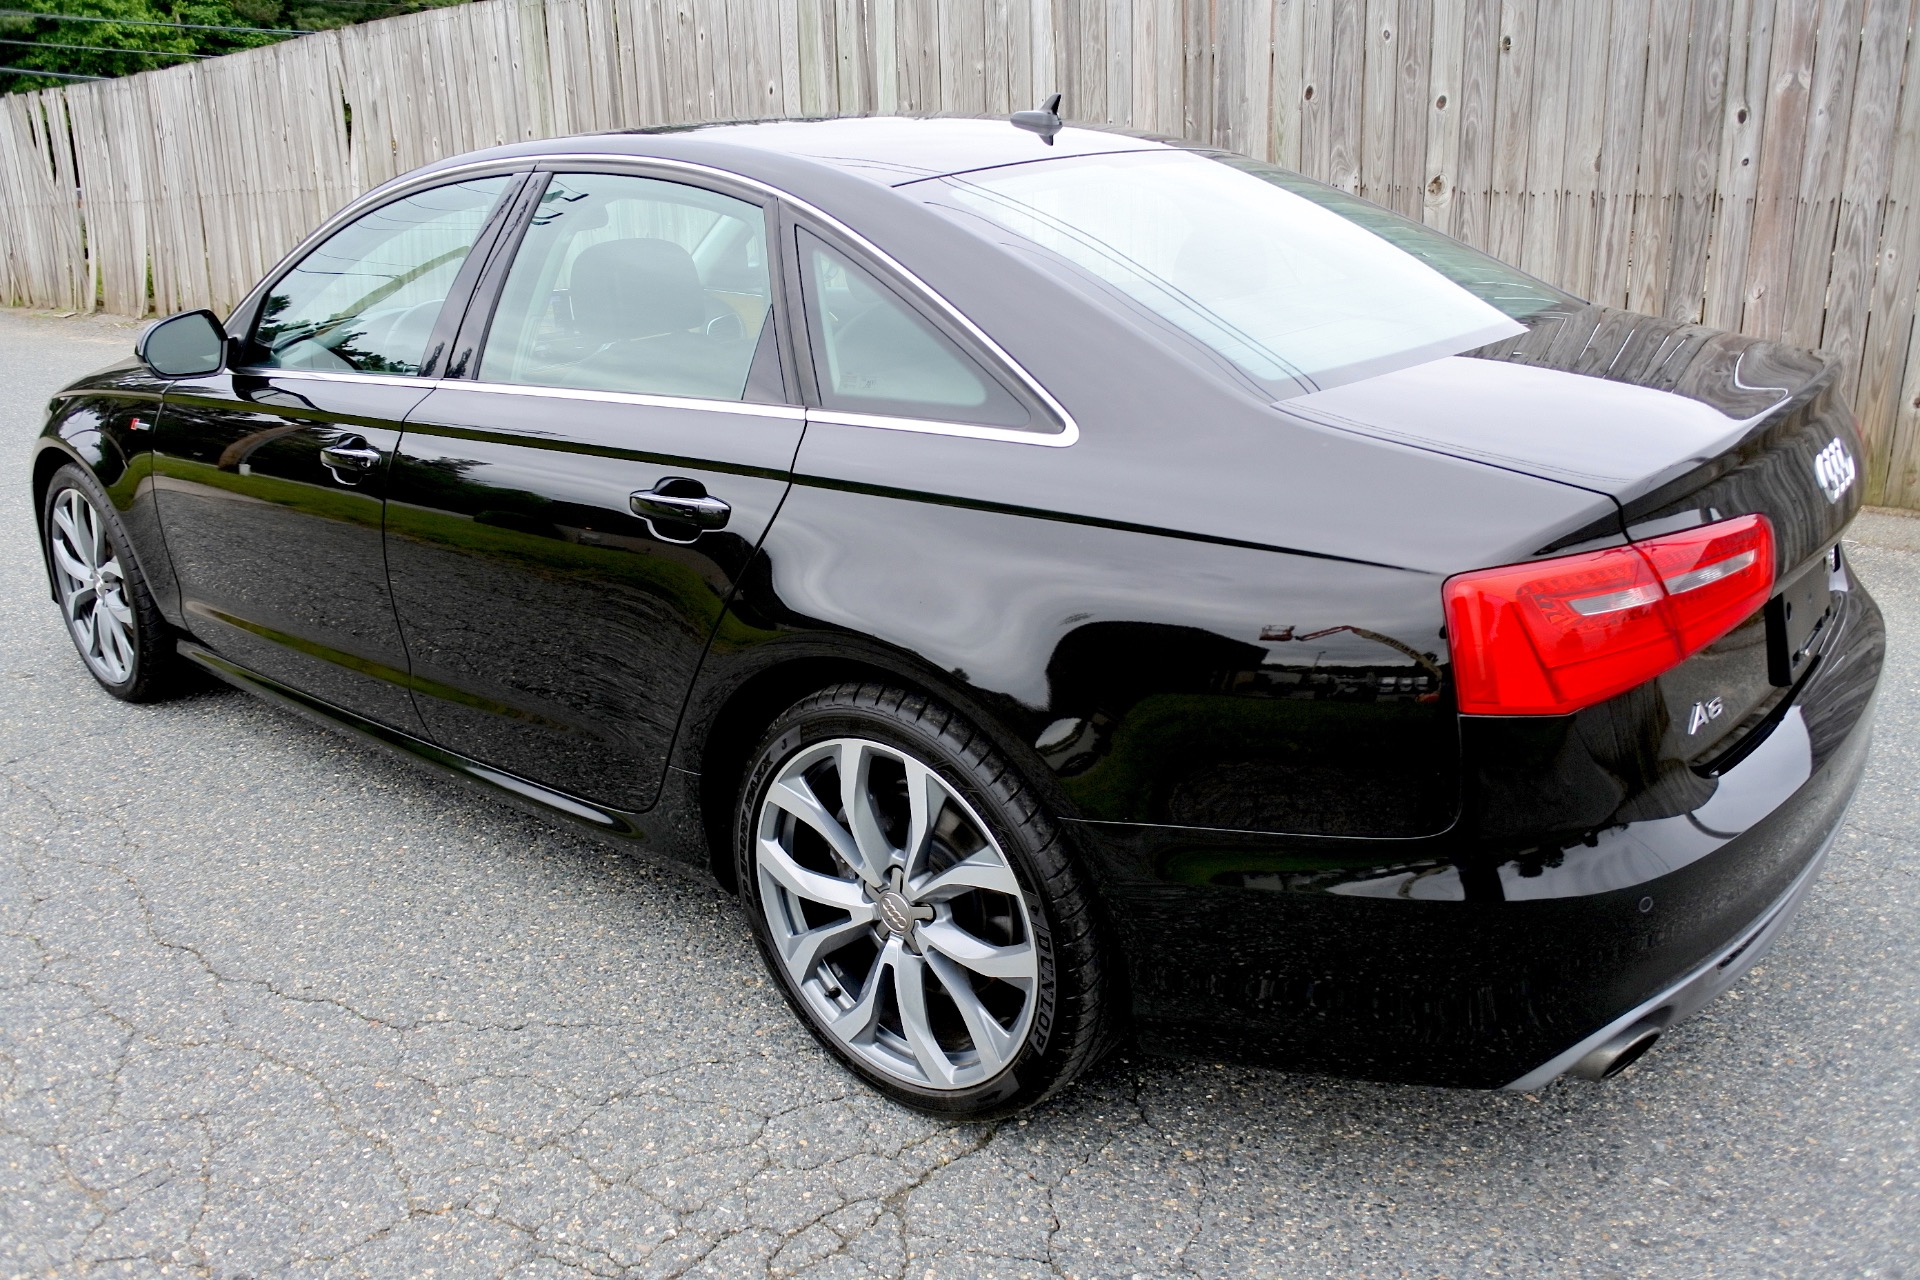 Used 2013 Audi A6 4dr Sdn quattro 3.0T Prestige Used 2013 Audi A6 4dr Sdn quattro 3.0T Prestige for sale  at Metro West Motorcars LLC in Shrewsbury MA 3